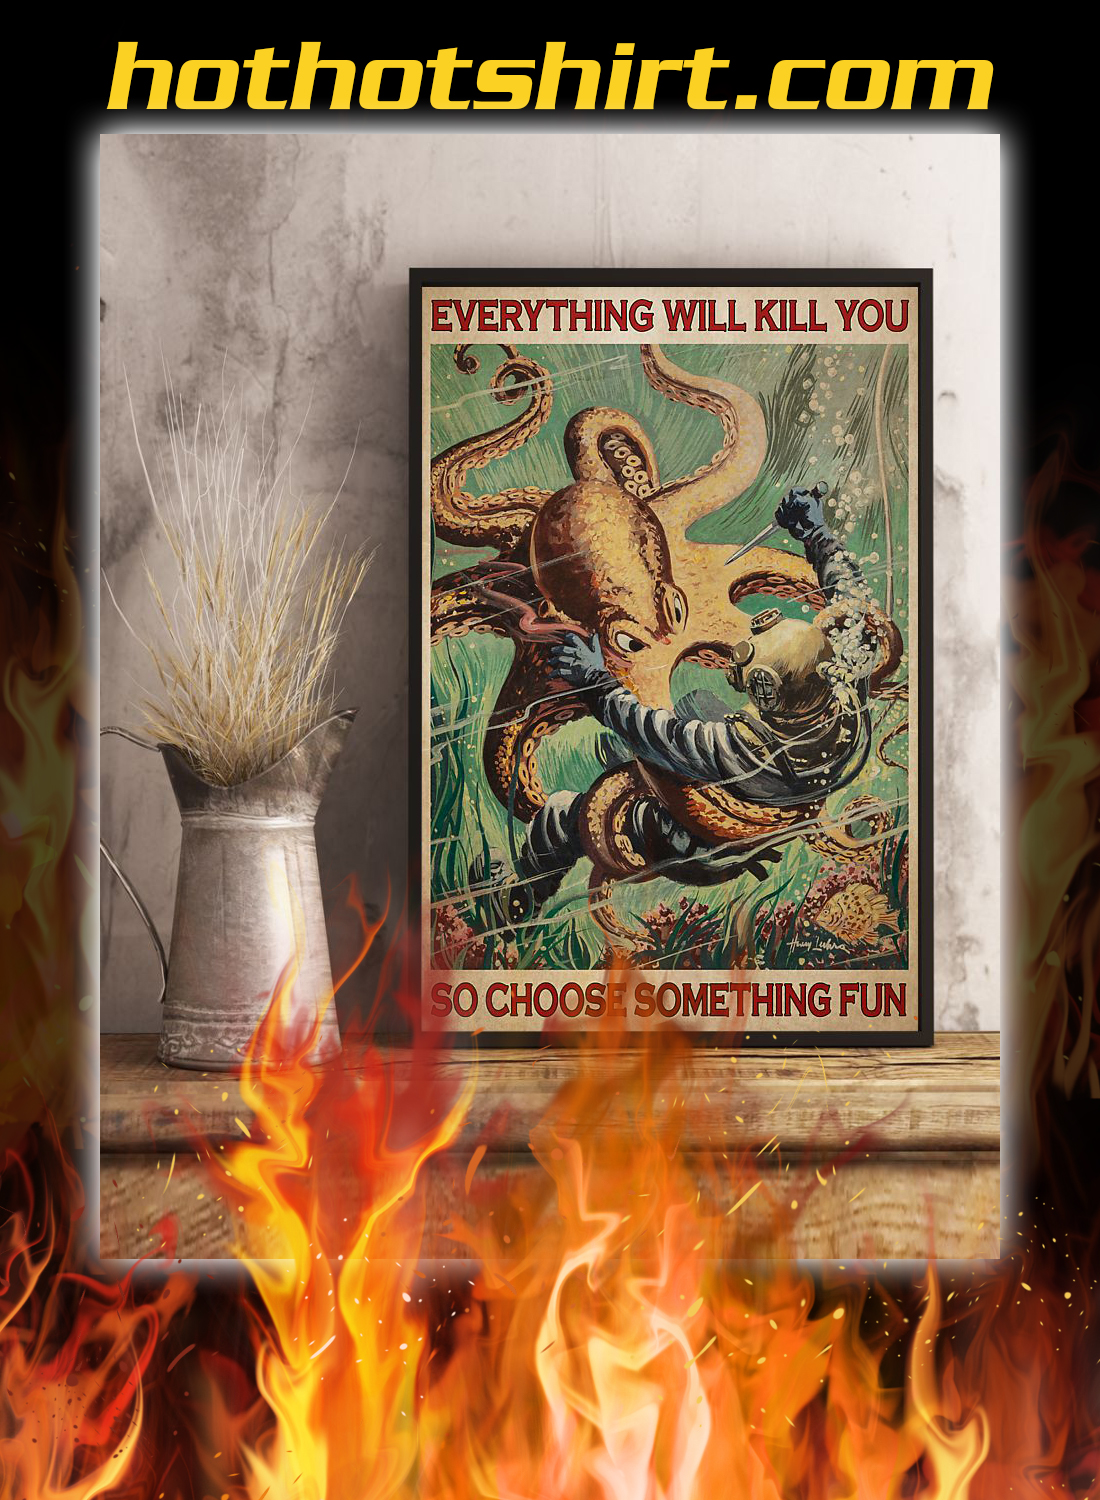 Diver and octopus everything will kill you so choose something fun poster